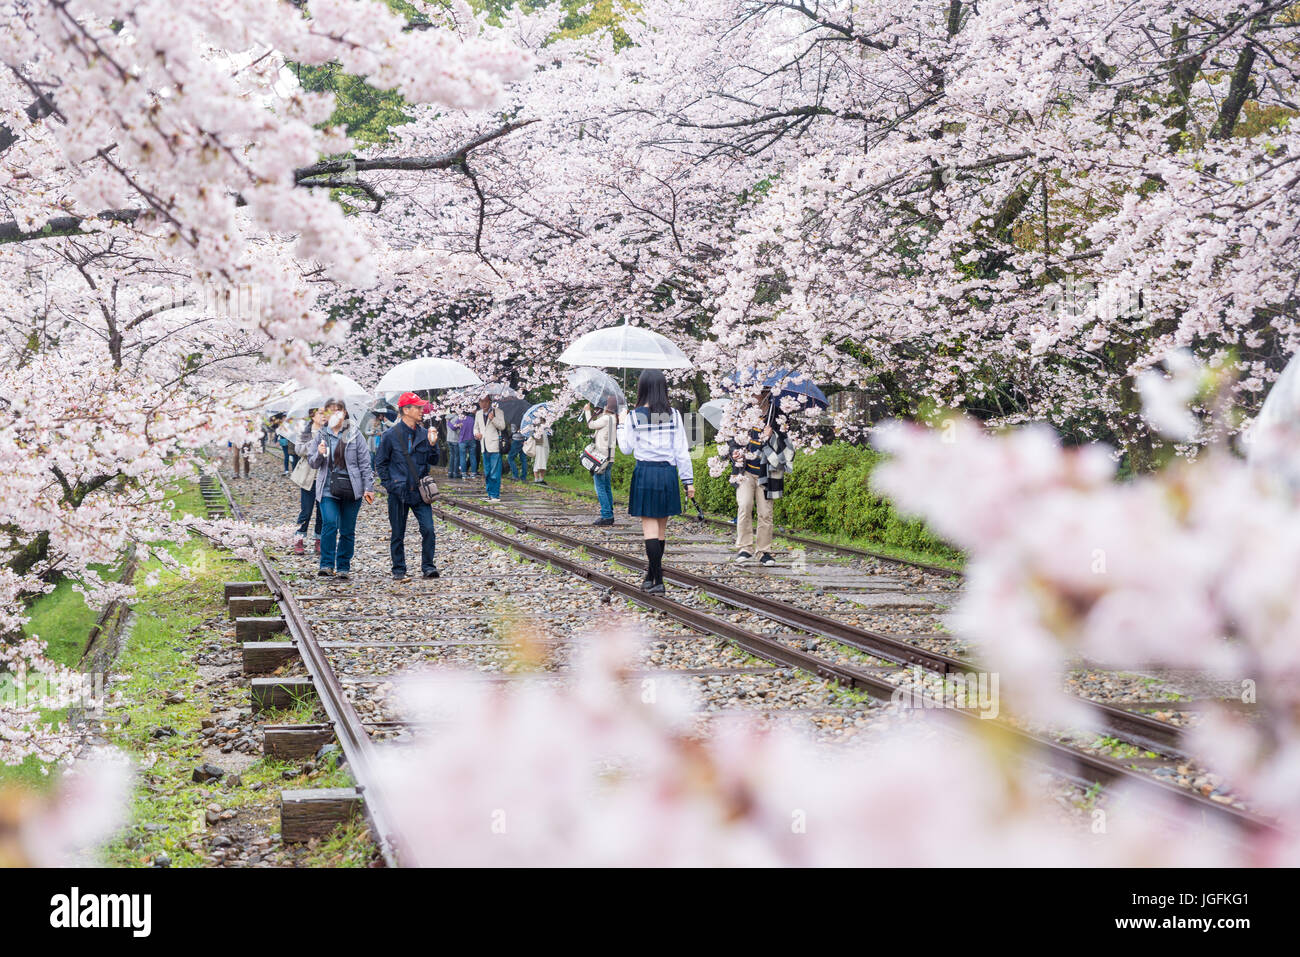 Kyoto, Japan - April 9, 2017: People enjoy spring season at Keage incline with sakura (cherry blossoms), Kyoto. - Stock Image